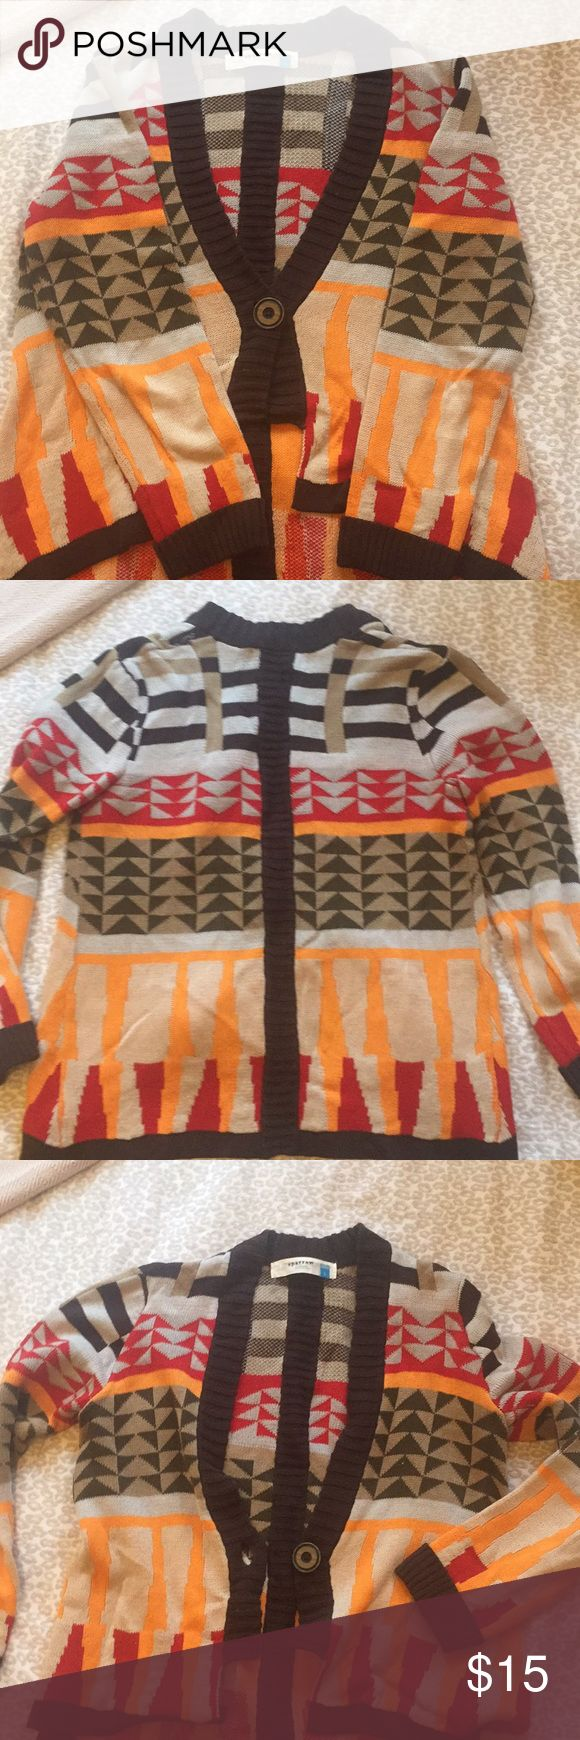 Slouchy Navajo print cardigan. Slouchy Navajo print cardigan. Originally from Anthropologie. Sparrow brand. Size L. Super comfy. Great to throw on to wear on the weekends with leggings or jeans.  $15 OBO Anthropologie Sweaters Cardigans